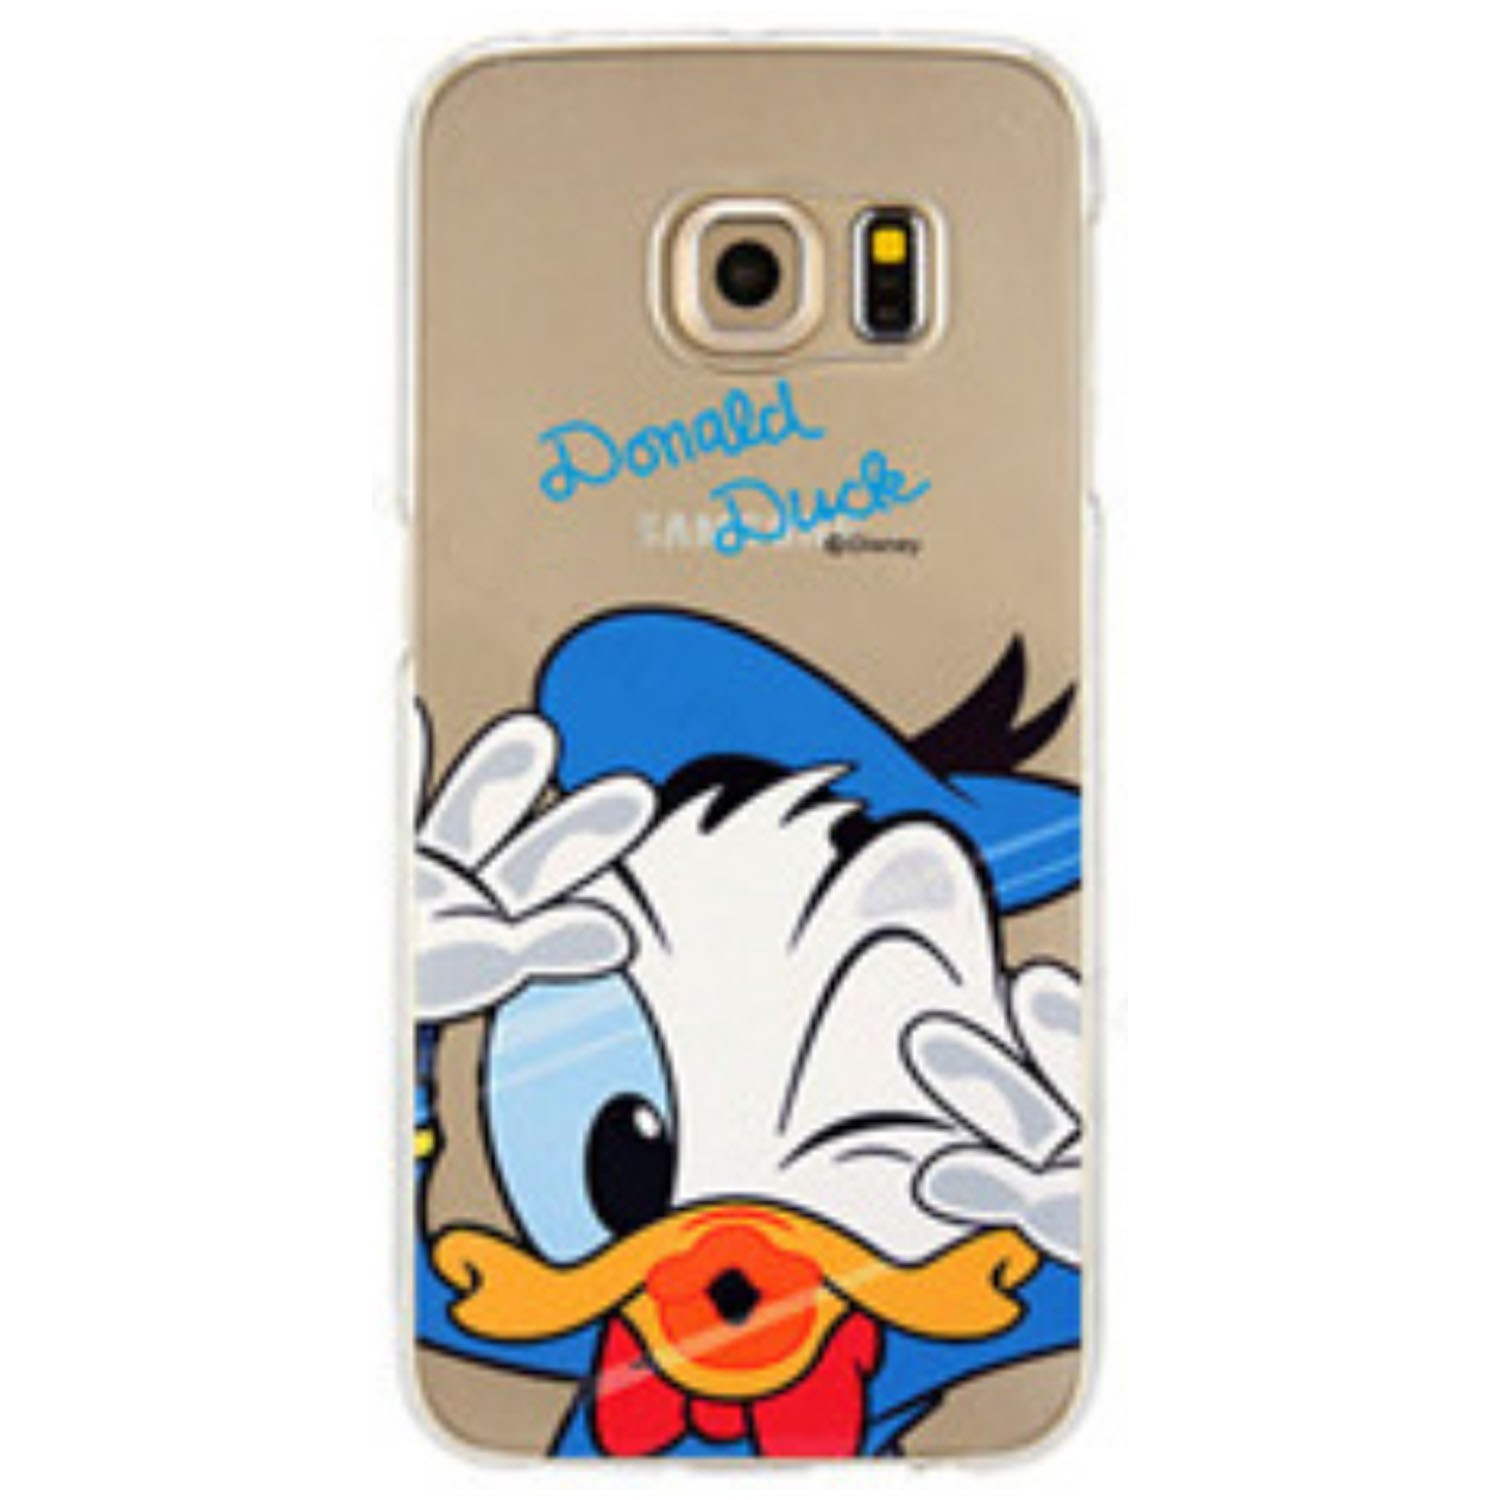 Kritzel Case Collection Galaxy S7 edge - Donald Duck